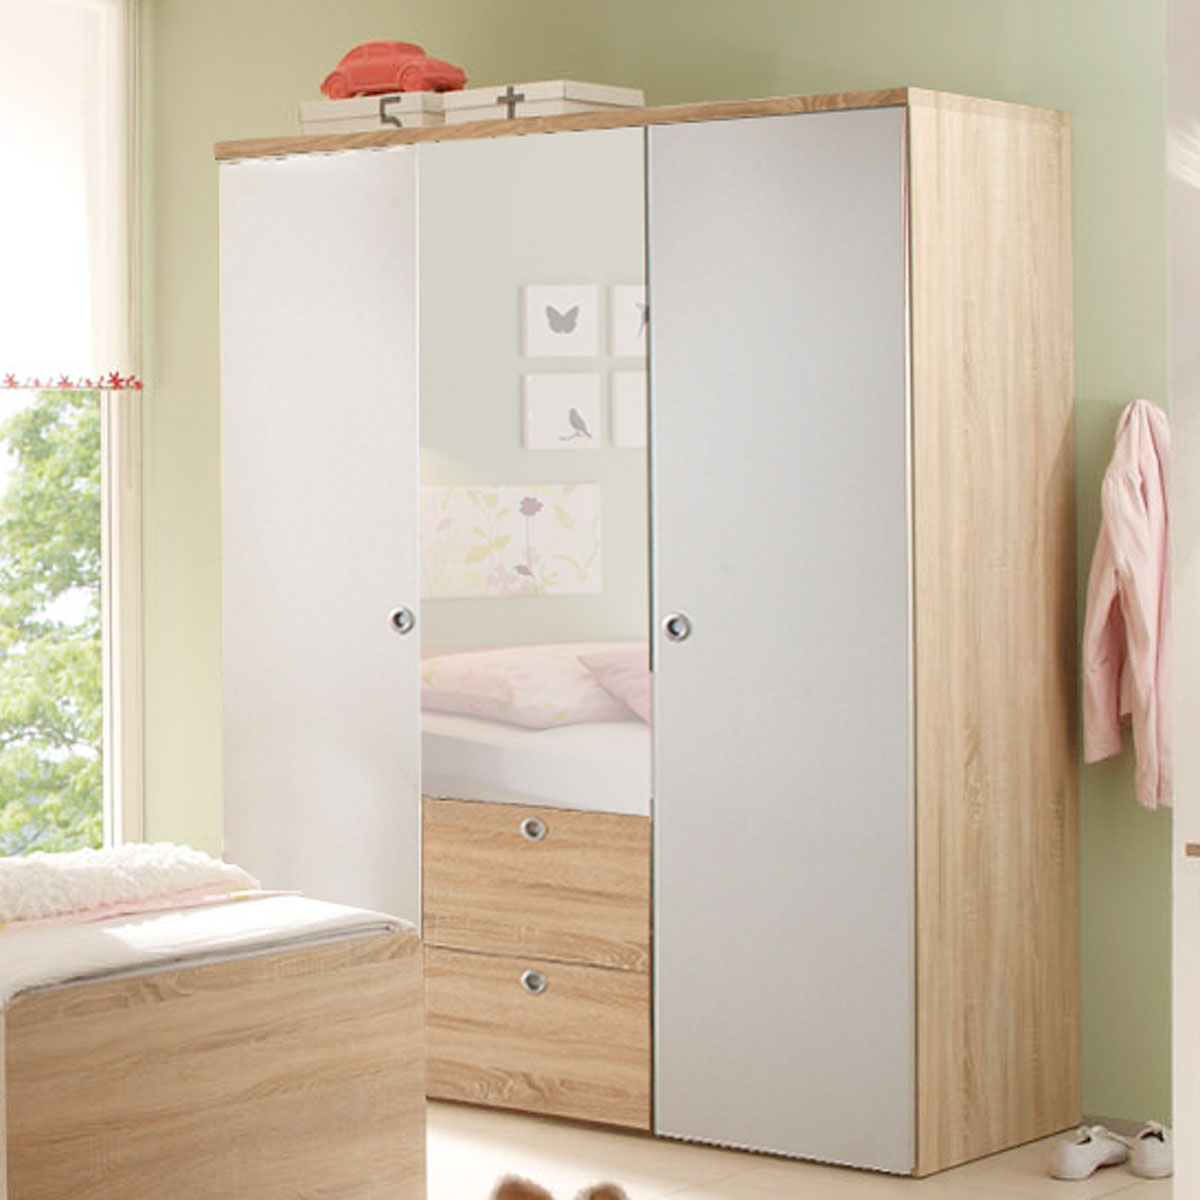 kleiderschrank wiki in eiche sonoma und wei babyzimmer schrank kinderzimmer. Black Bedroom Furniture Sets. Home Design Ideas